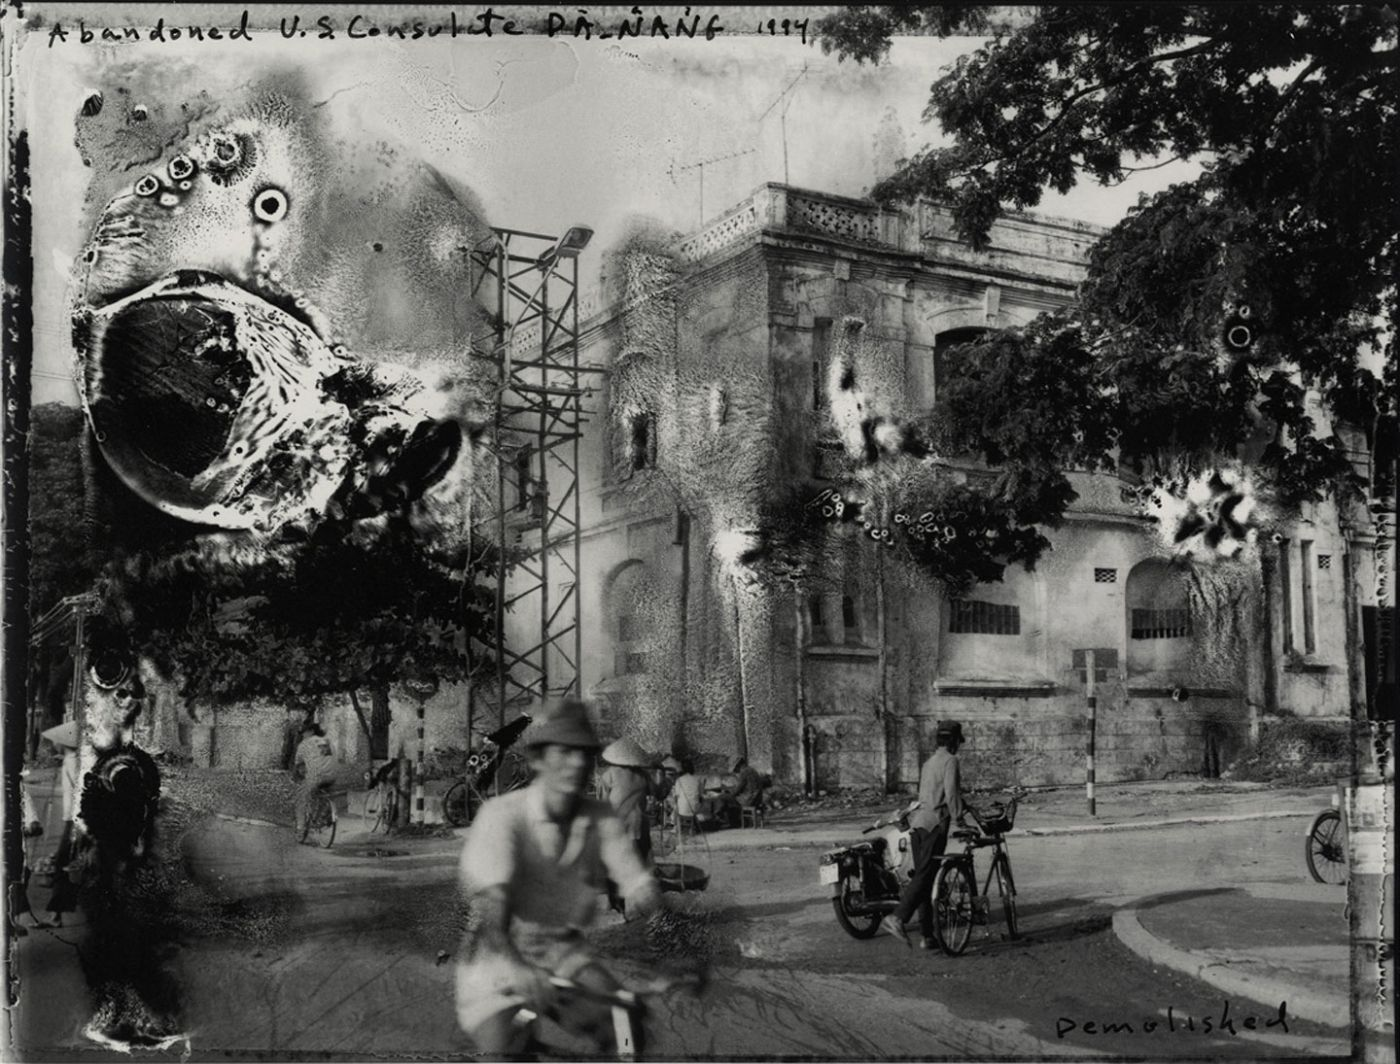 """Bill Burke: """"Abandoned U.S. Consulate, Danang (Demolished 1999), 1994,"""" Limited Edition Gelatin Silver Print (20x24"""" from an edition of 20)"""